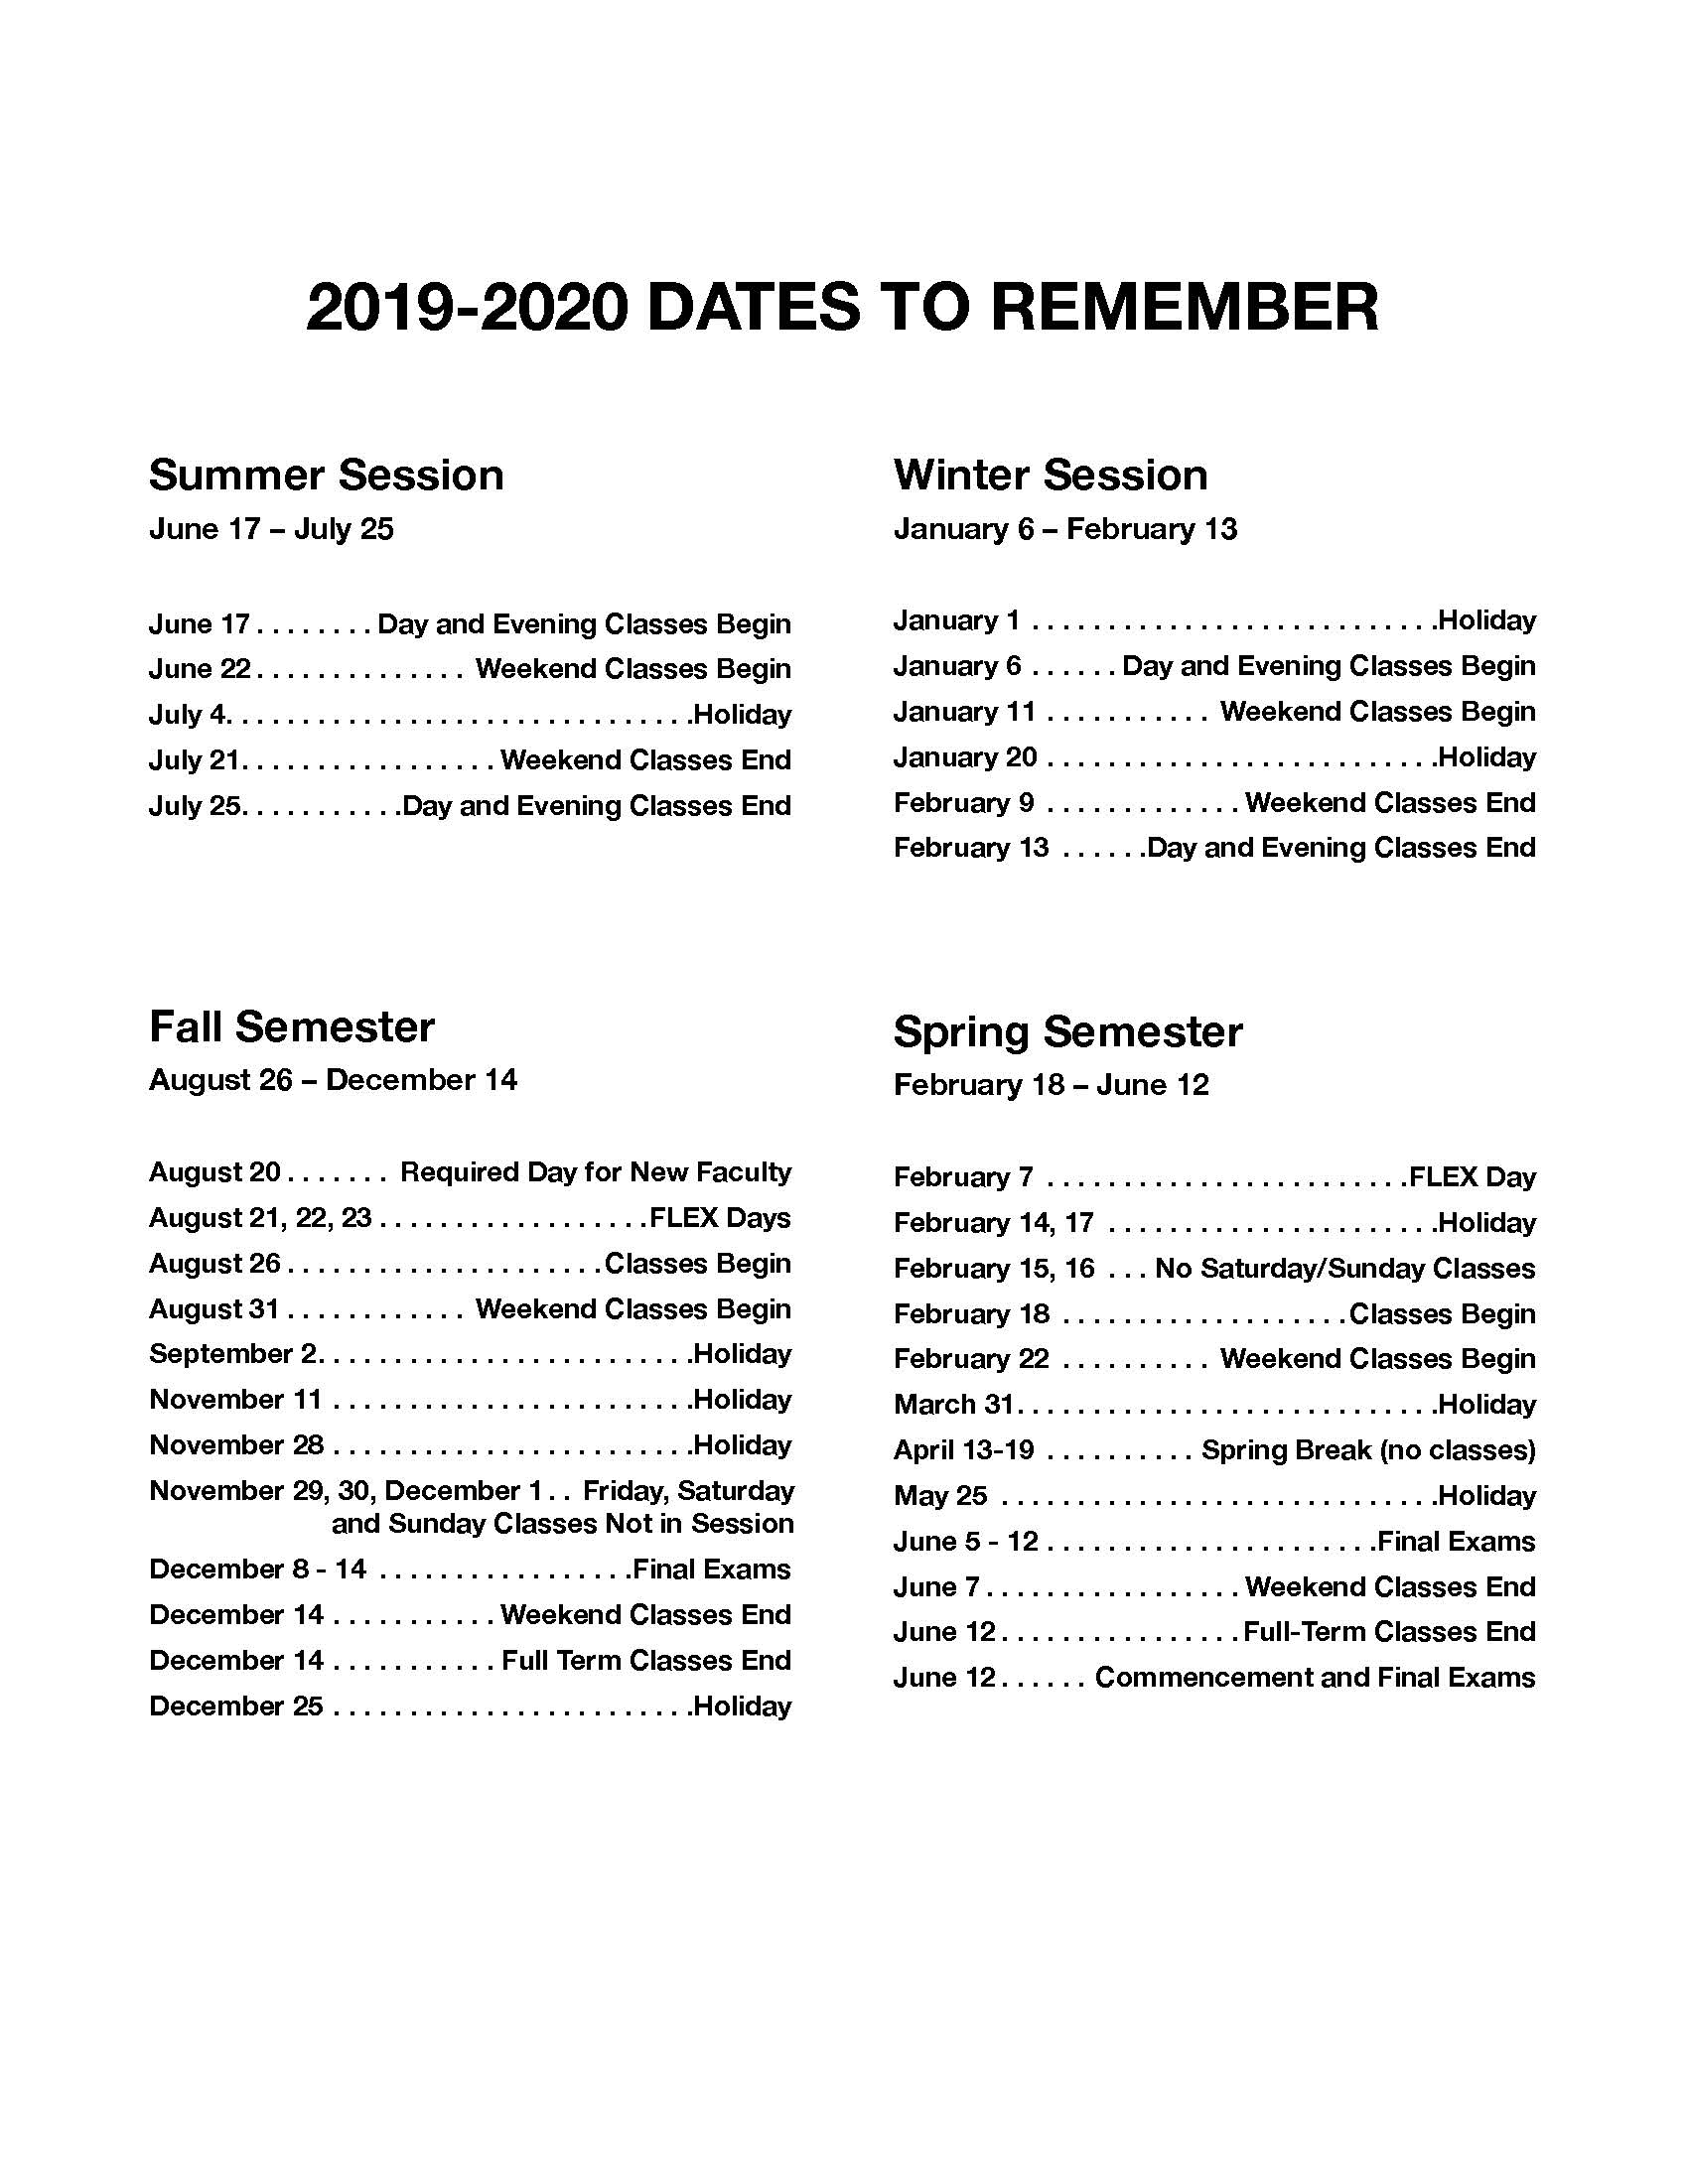 Jfk And Norco College Calendar 2019 2020 - John F. Kennedy With Norco Unified School District Calendar